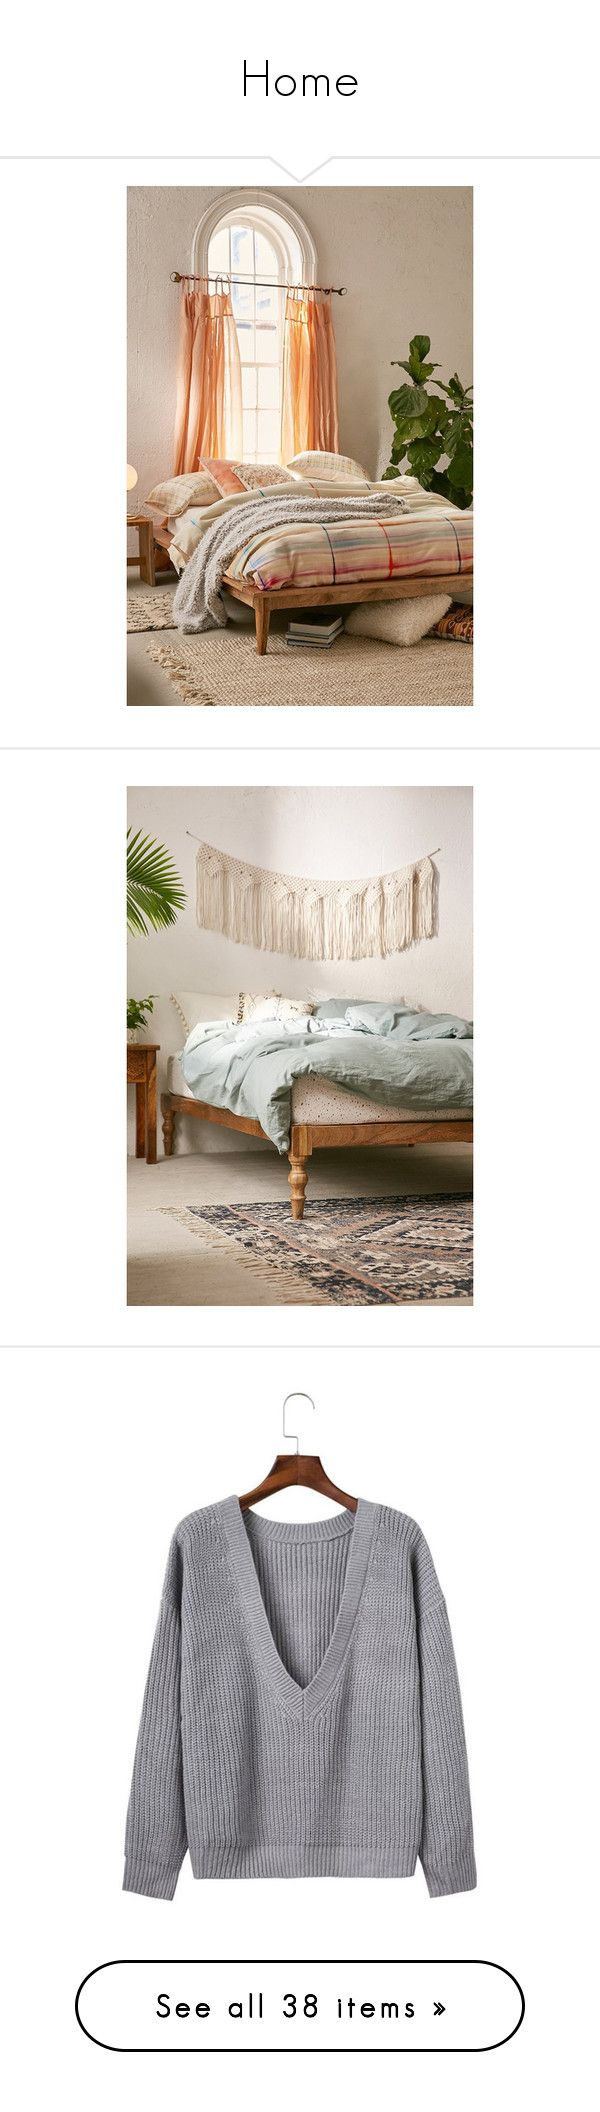 Rustic wood platform bed -  Home By Papillon Mjulia Liked On Polyvore Featuring Home Furniture